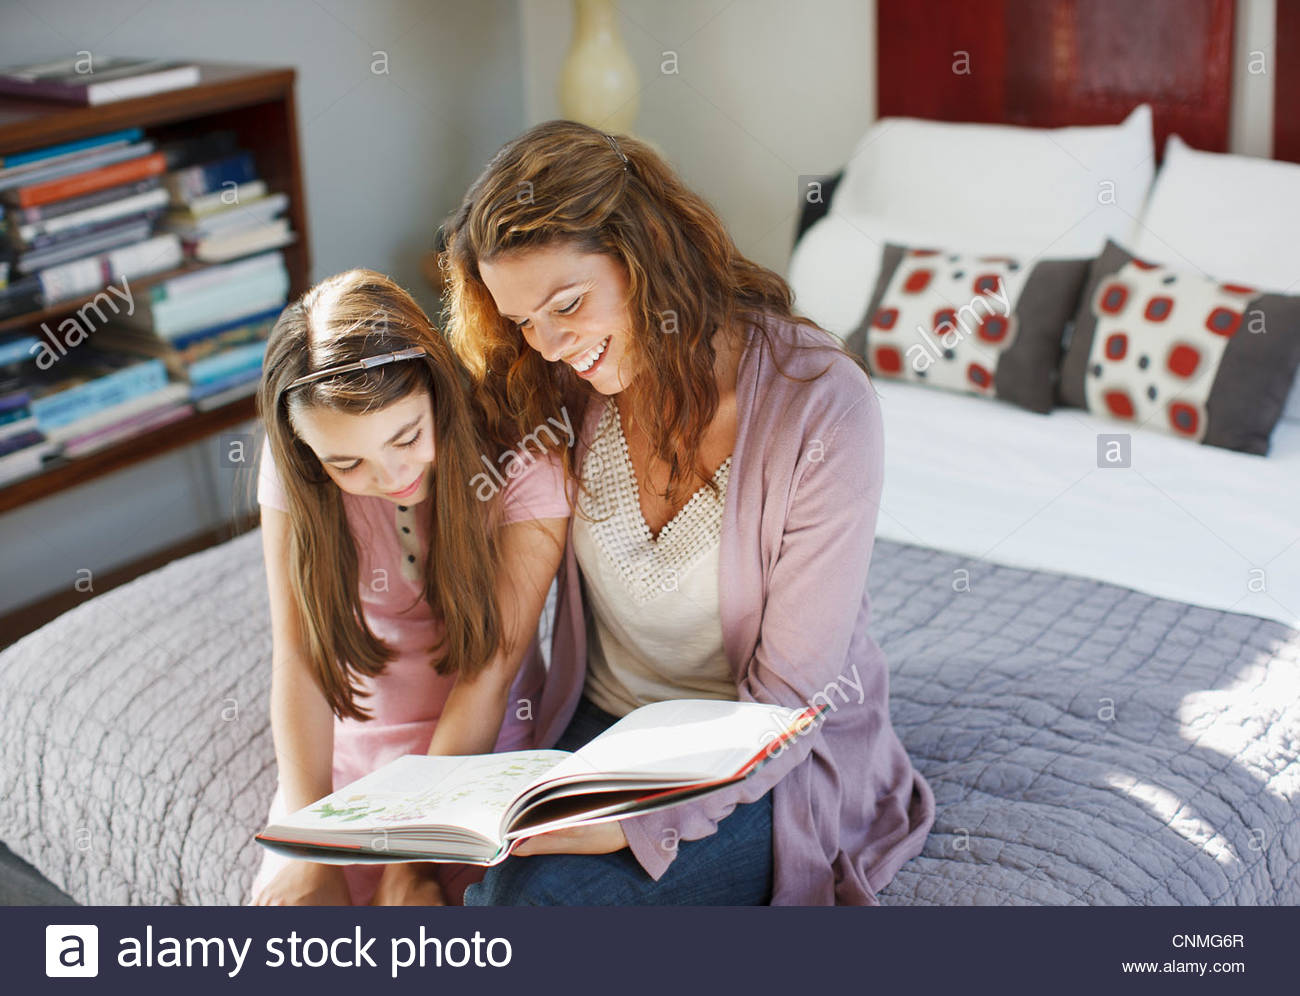 Mother and daughter reading on bed - Stock Image